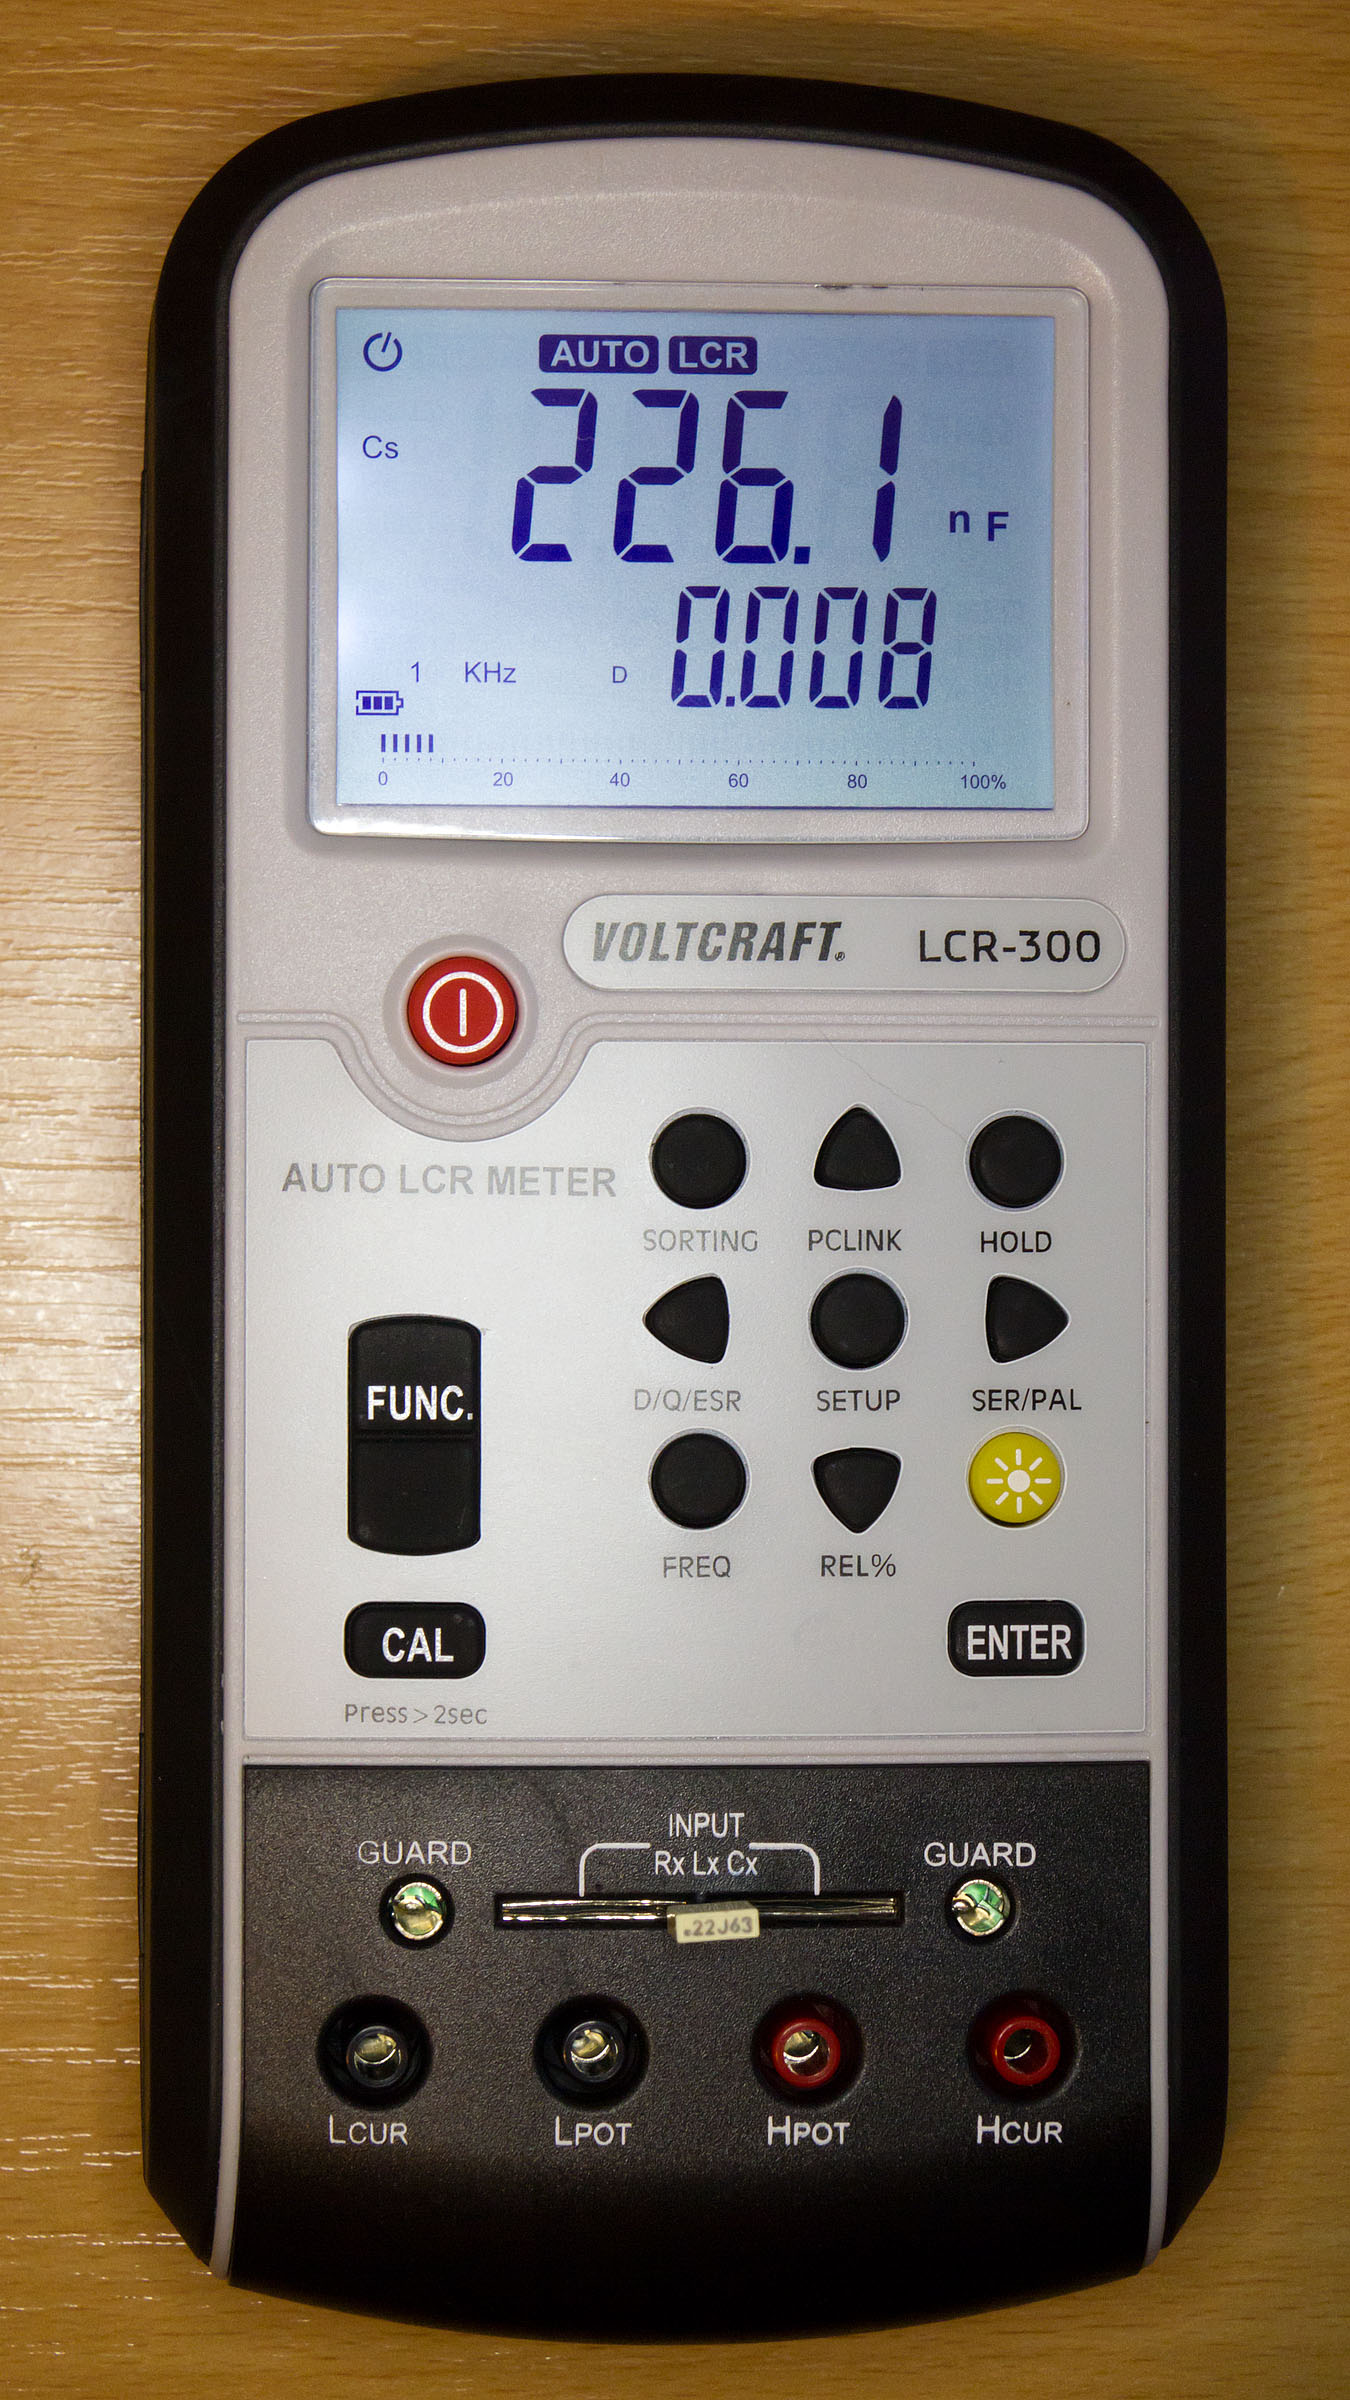 Voltcraft Lcr 300 Micro Review Page 1 New Capacitor Esr Dcr Tester In Circuit Capacitance Meter Ebay I Finally Bought An Specifically The From Rapid